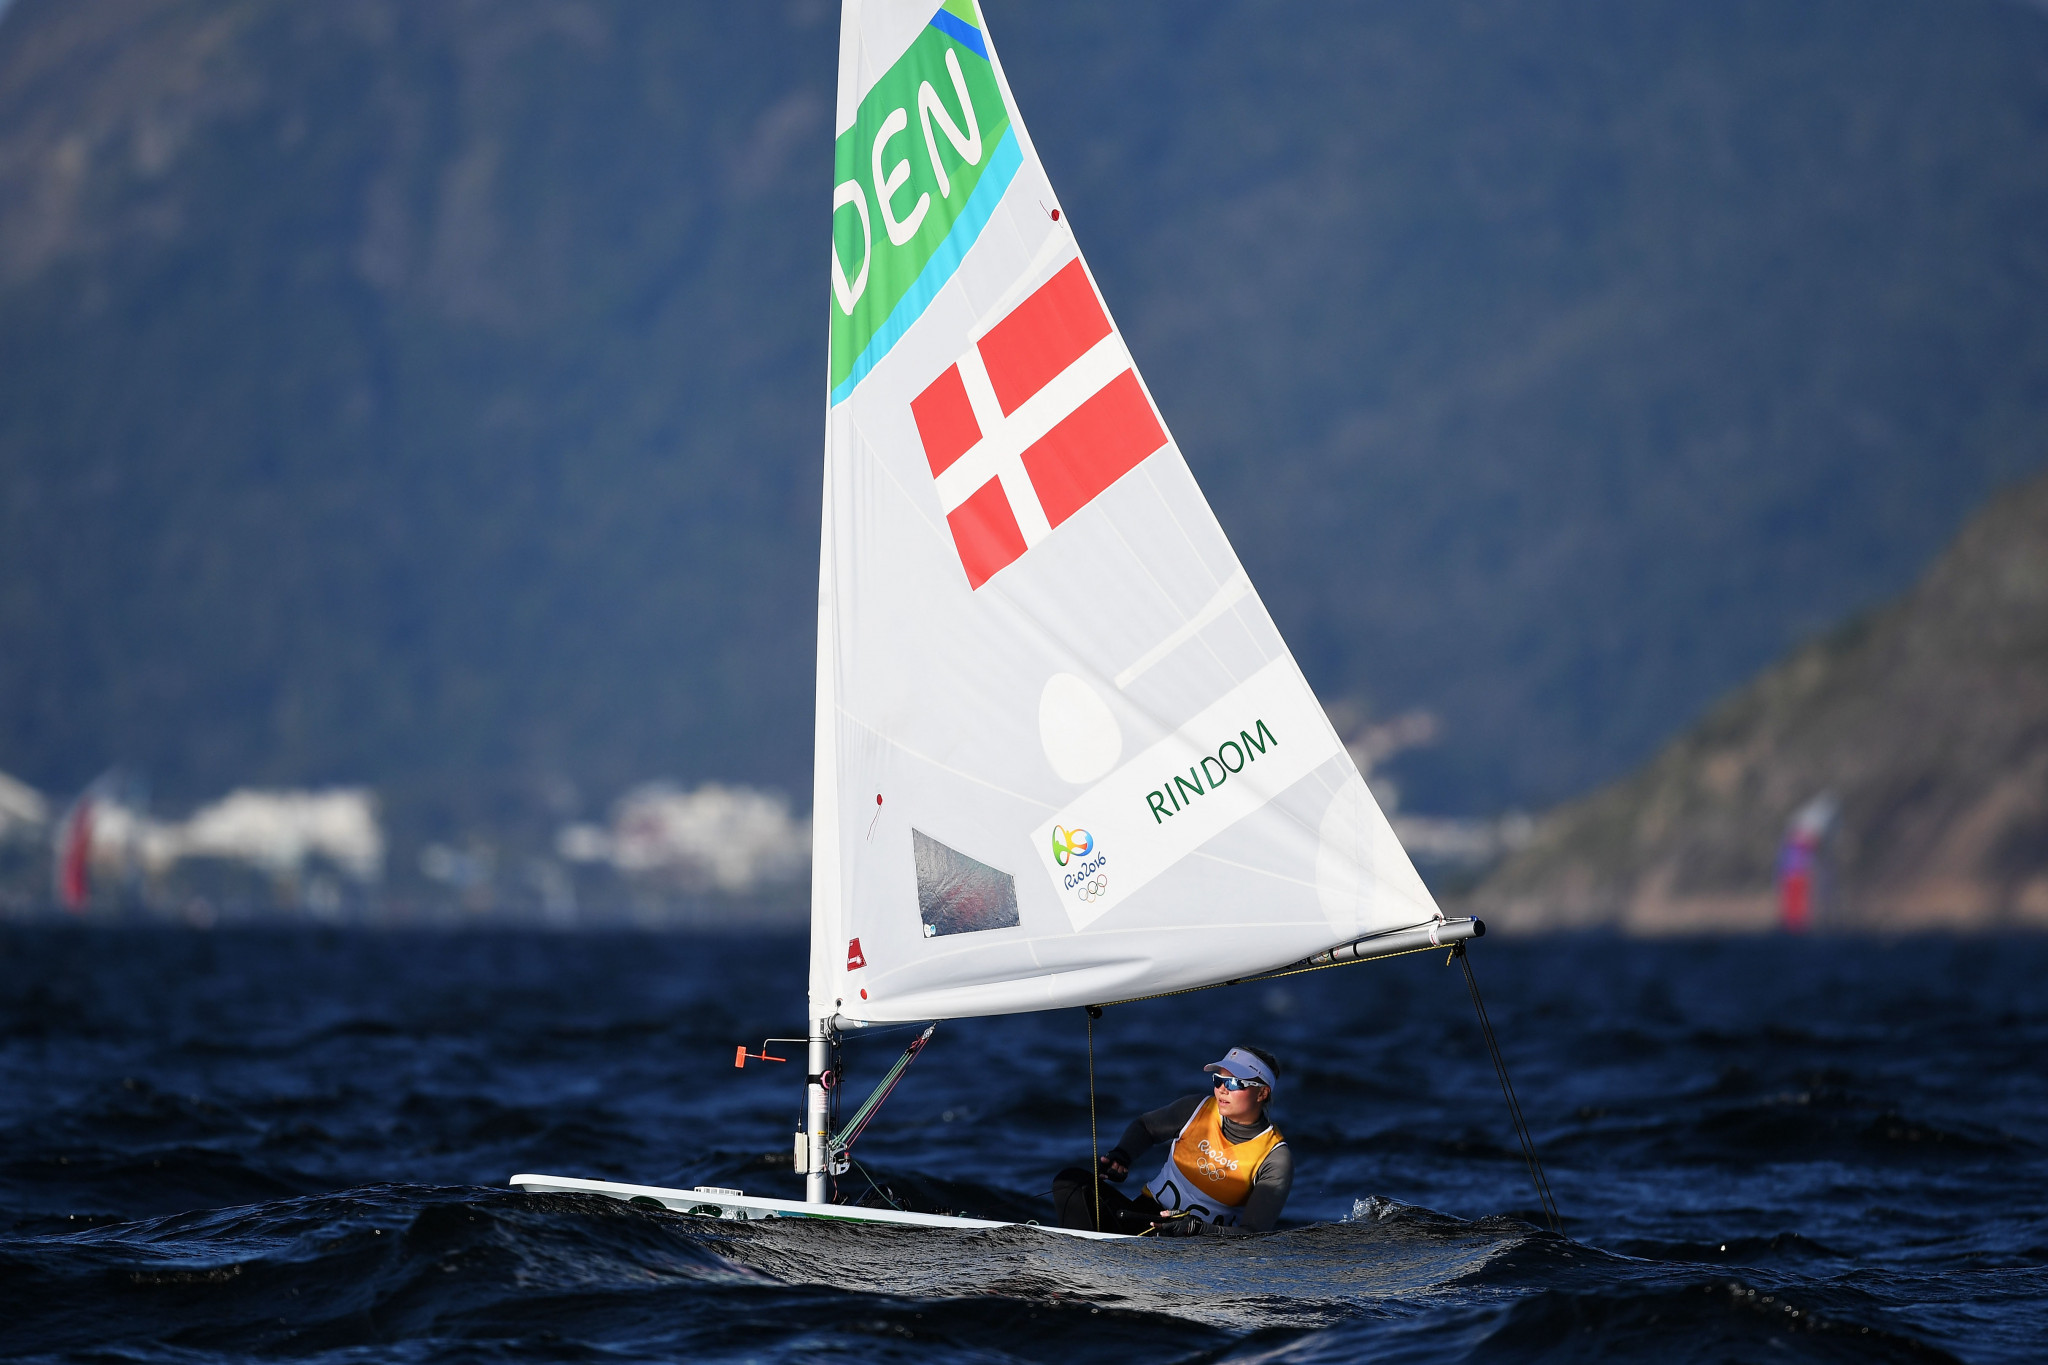 Rindom and Chiavarini to defend crowns at Laser European Championships